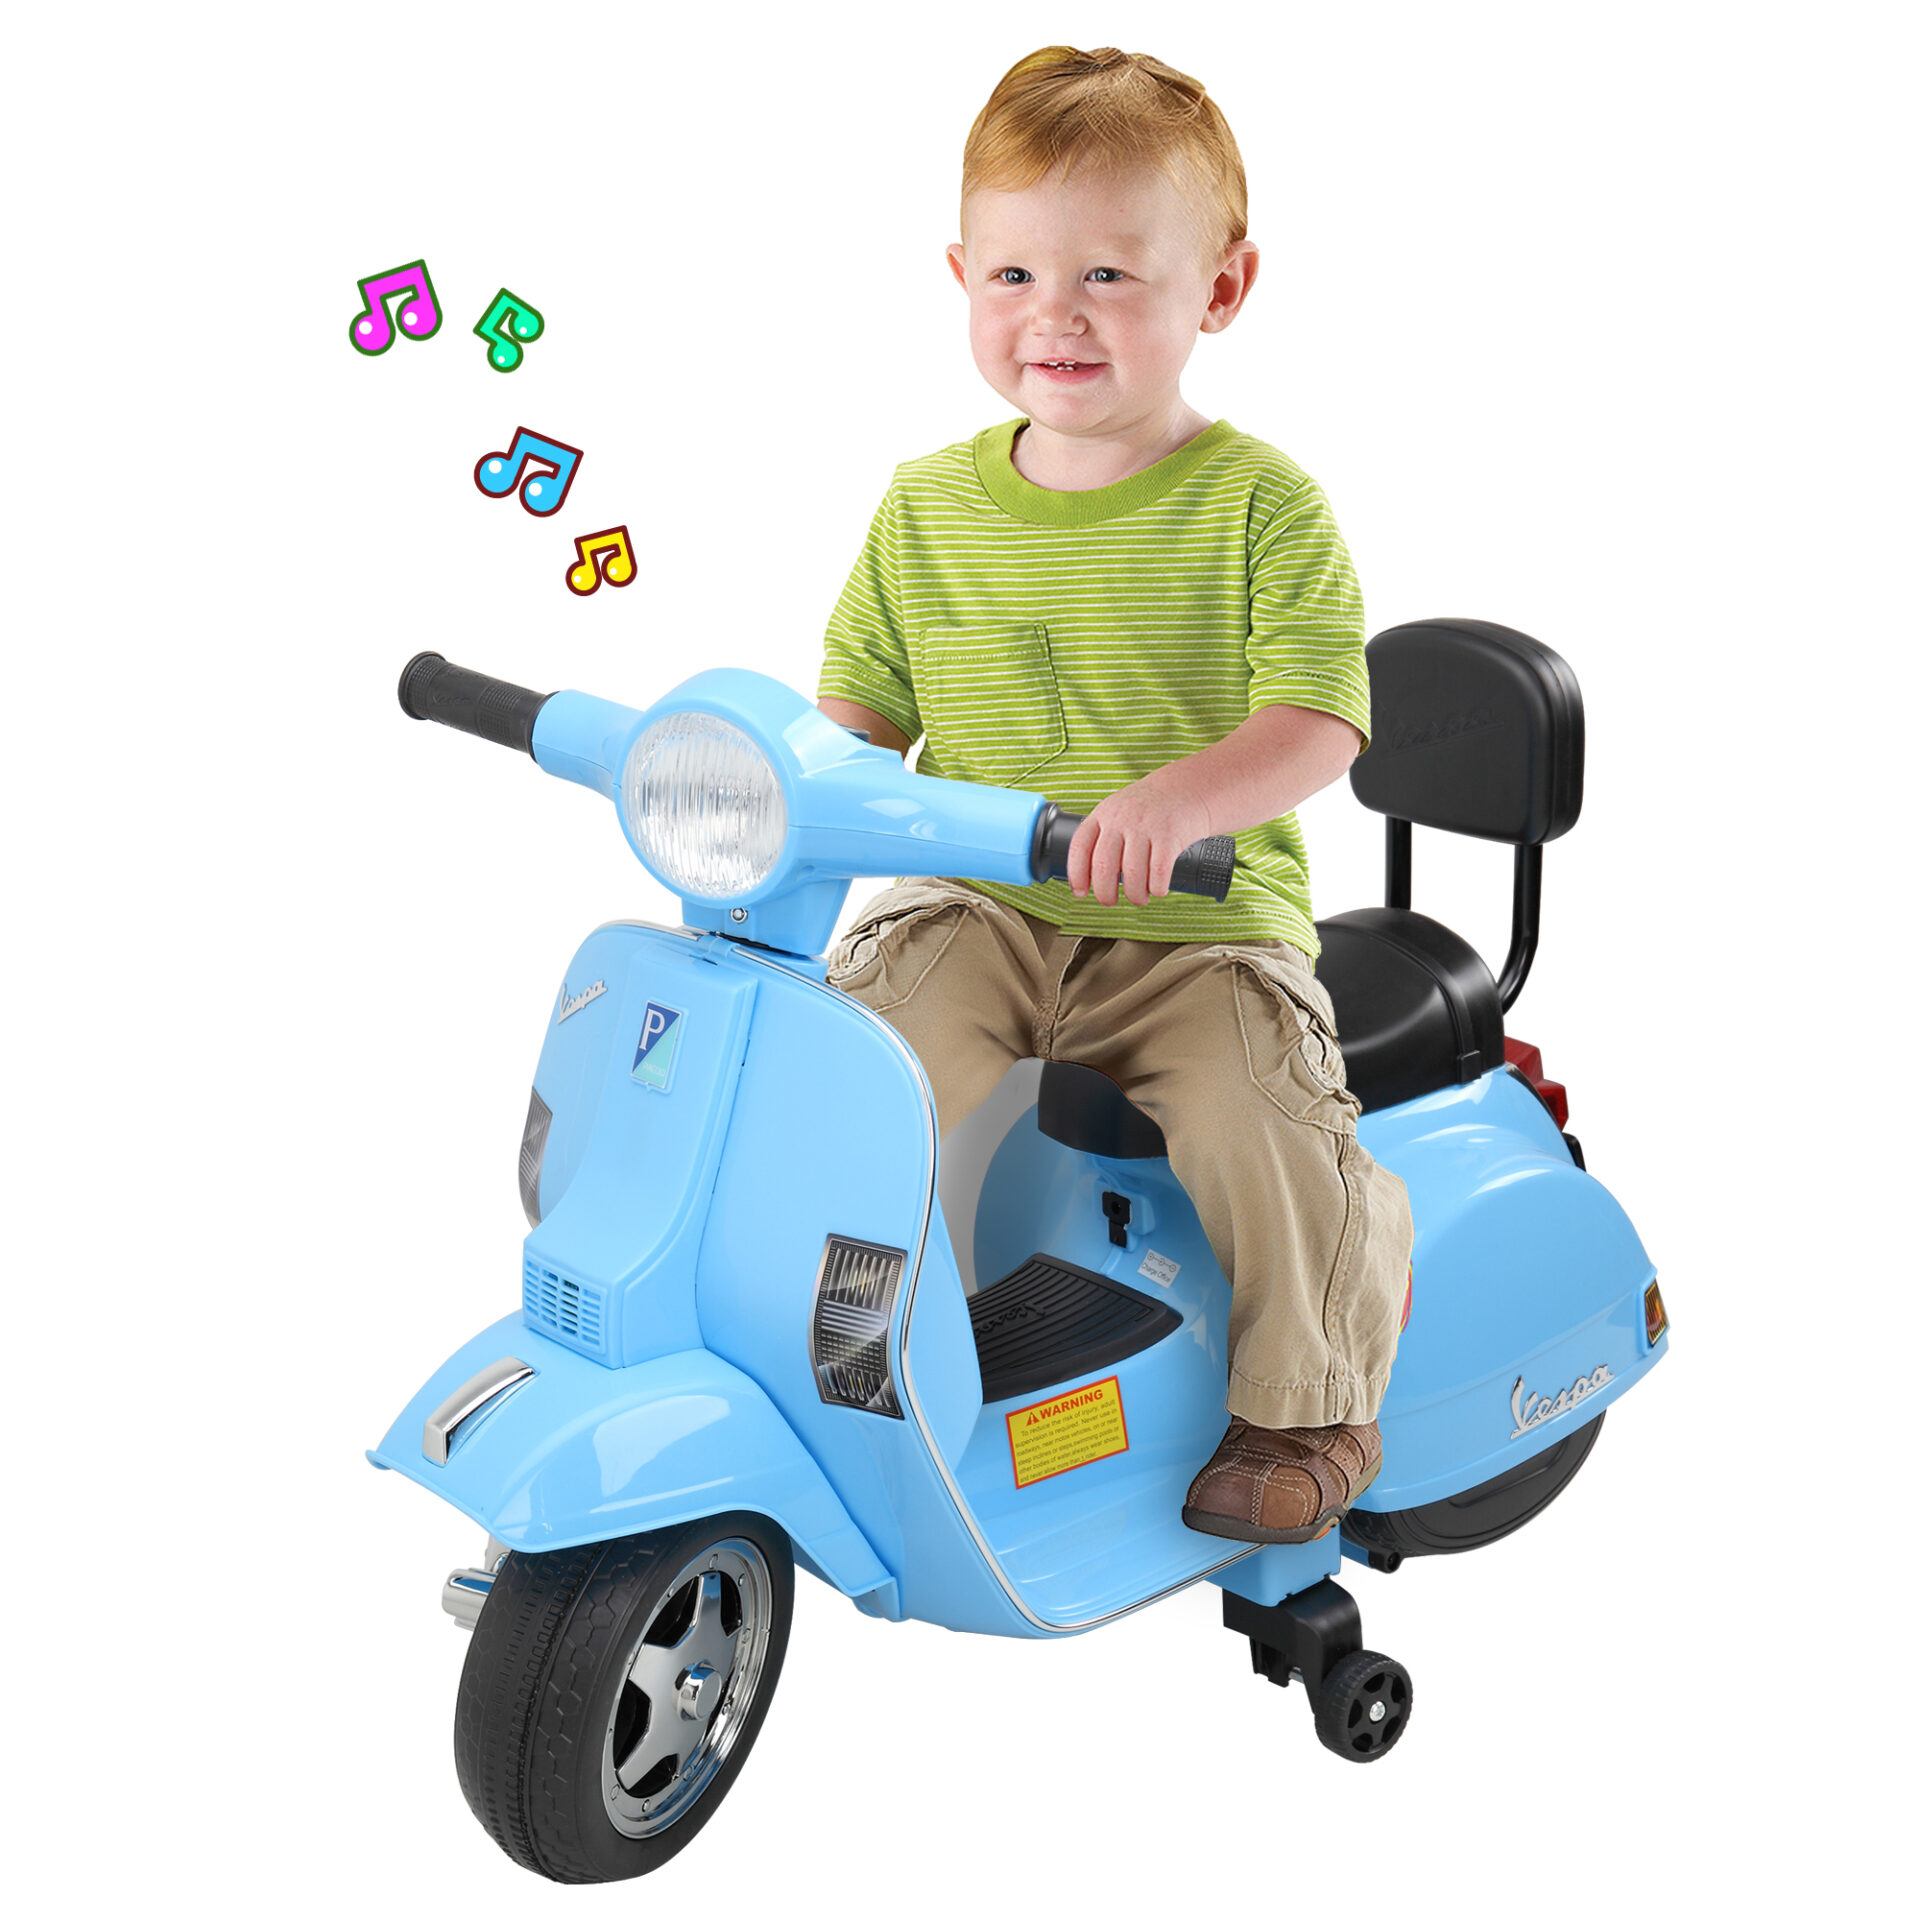 Vespa 6V Kids Ride-on Toys for 3-6 Year Old TH17X0479 2000x20001 1